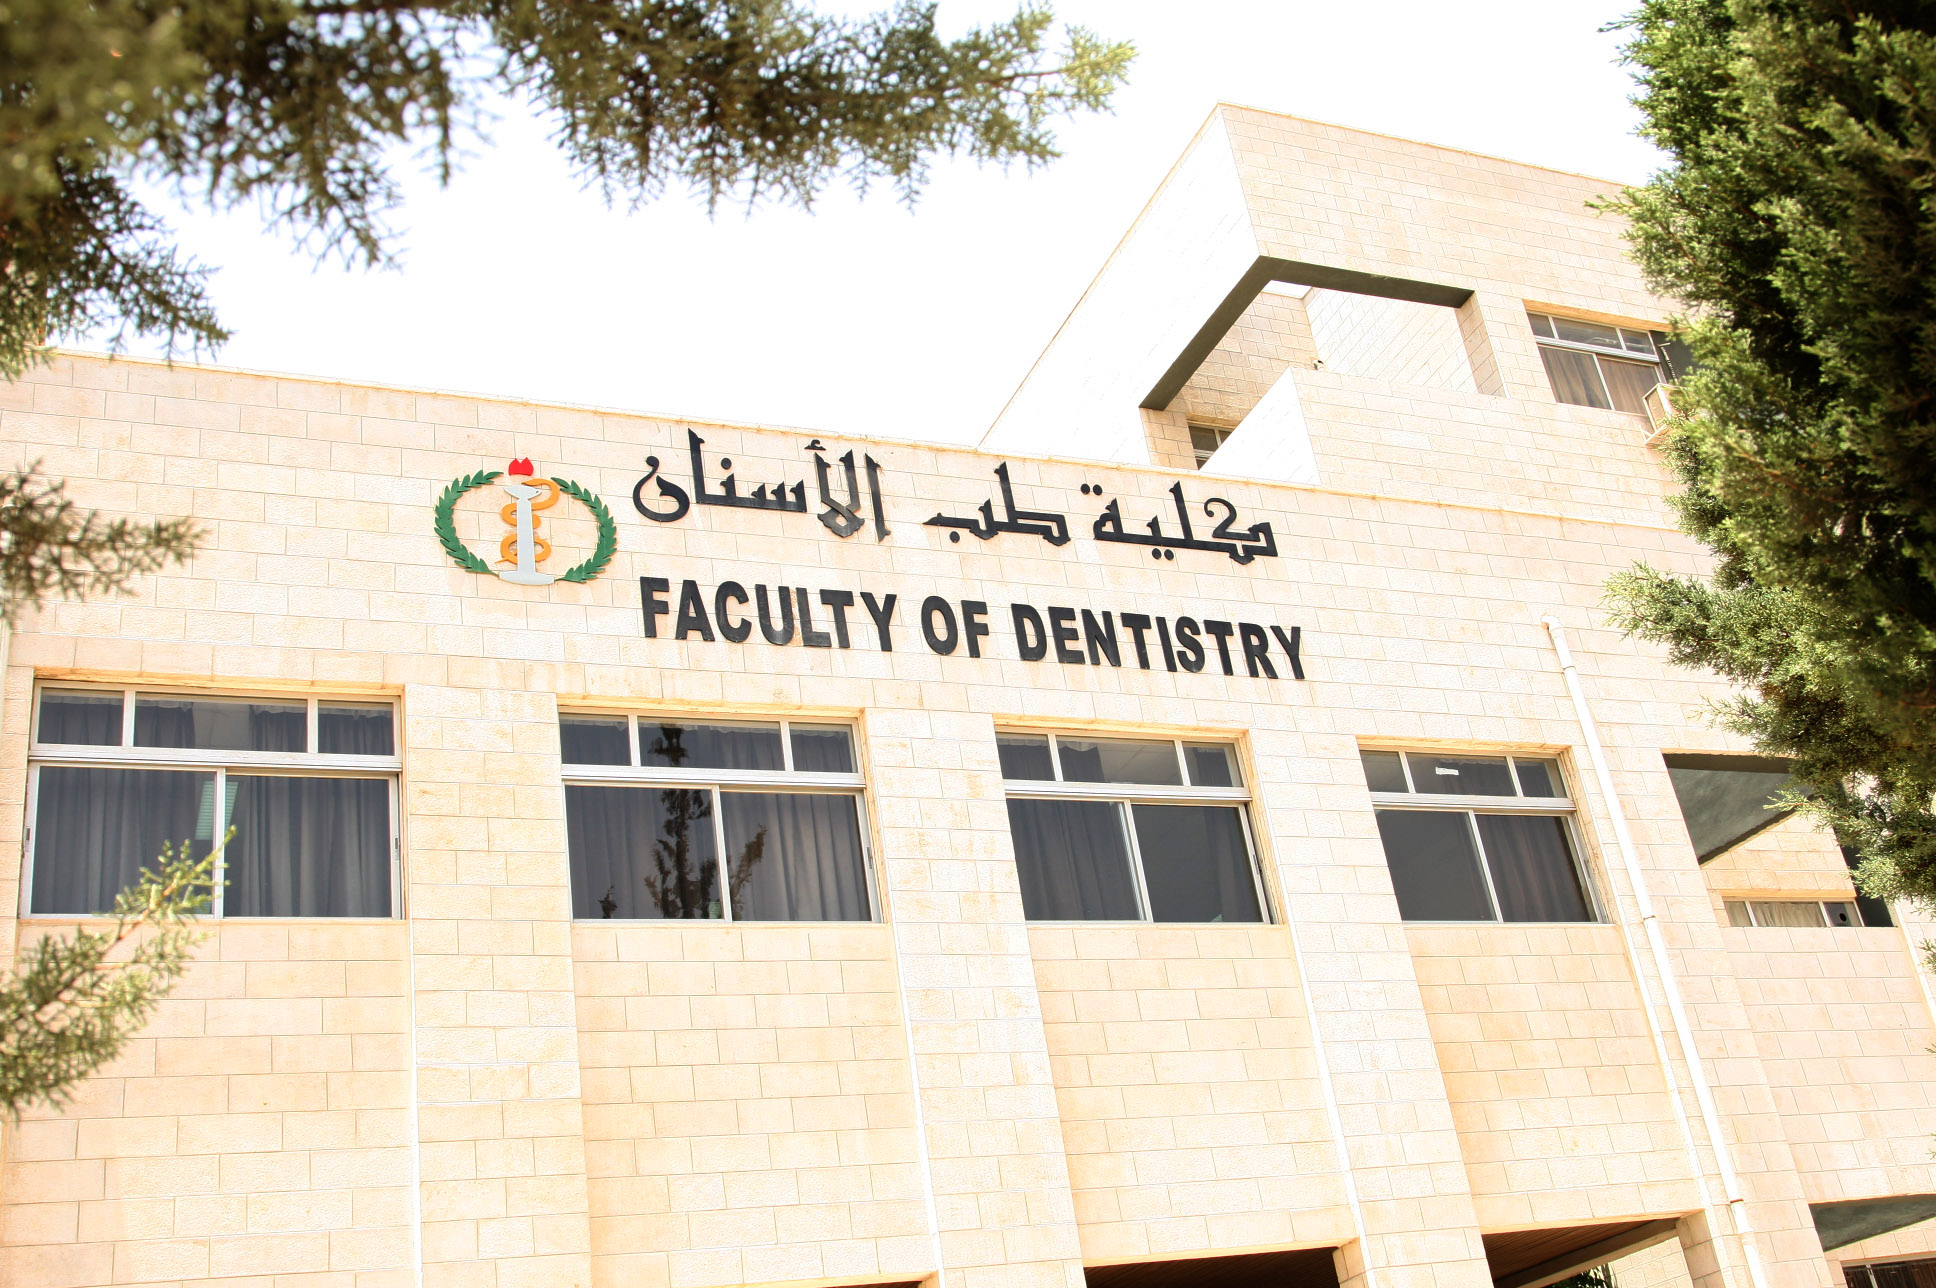 faculty_of_dentistry_ju.jpg